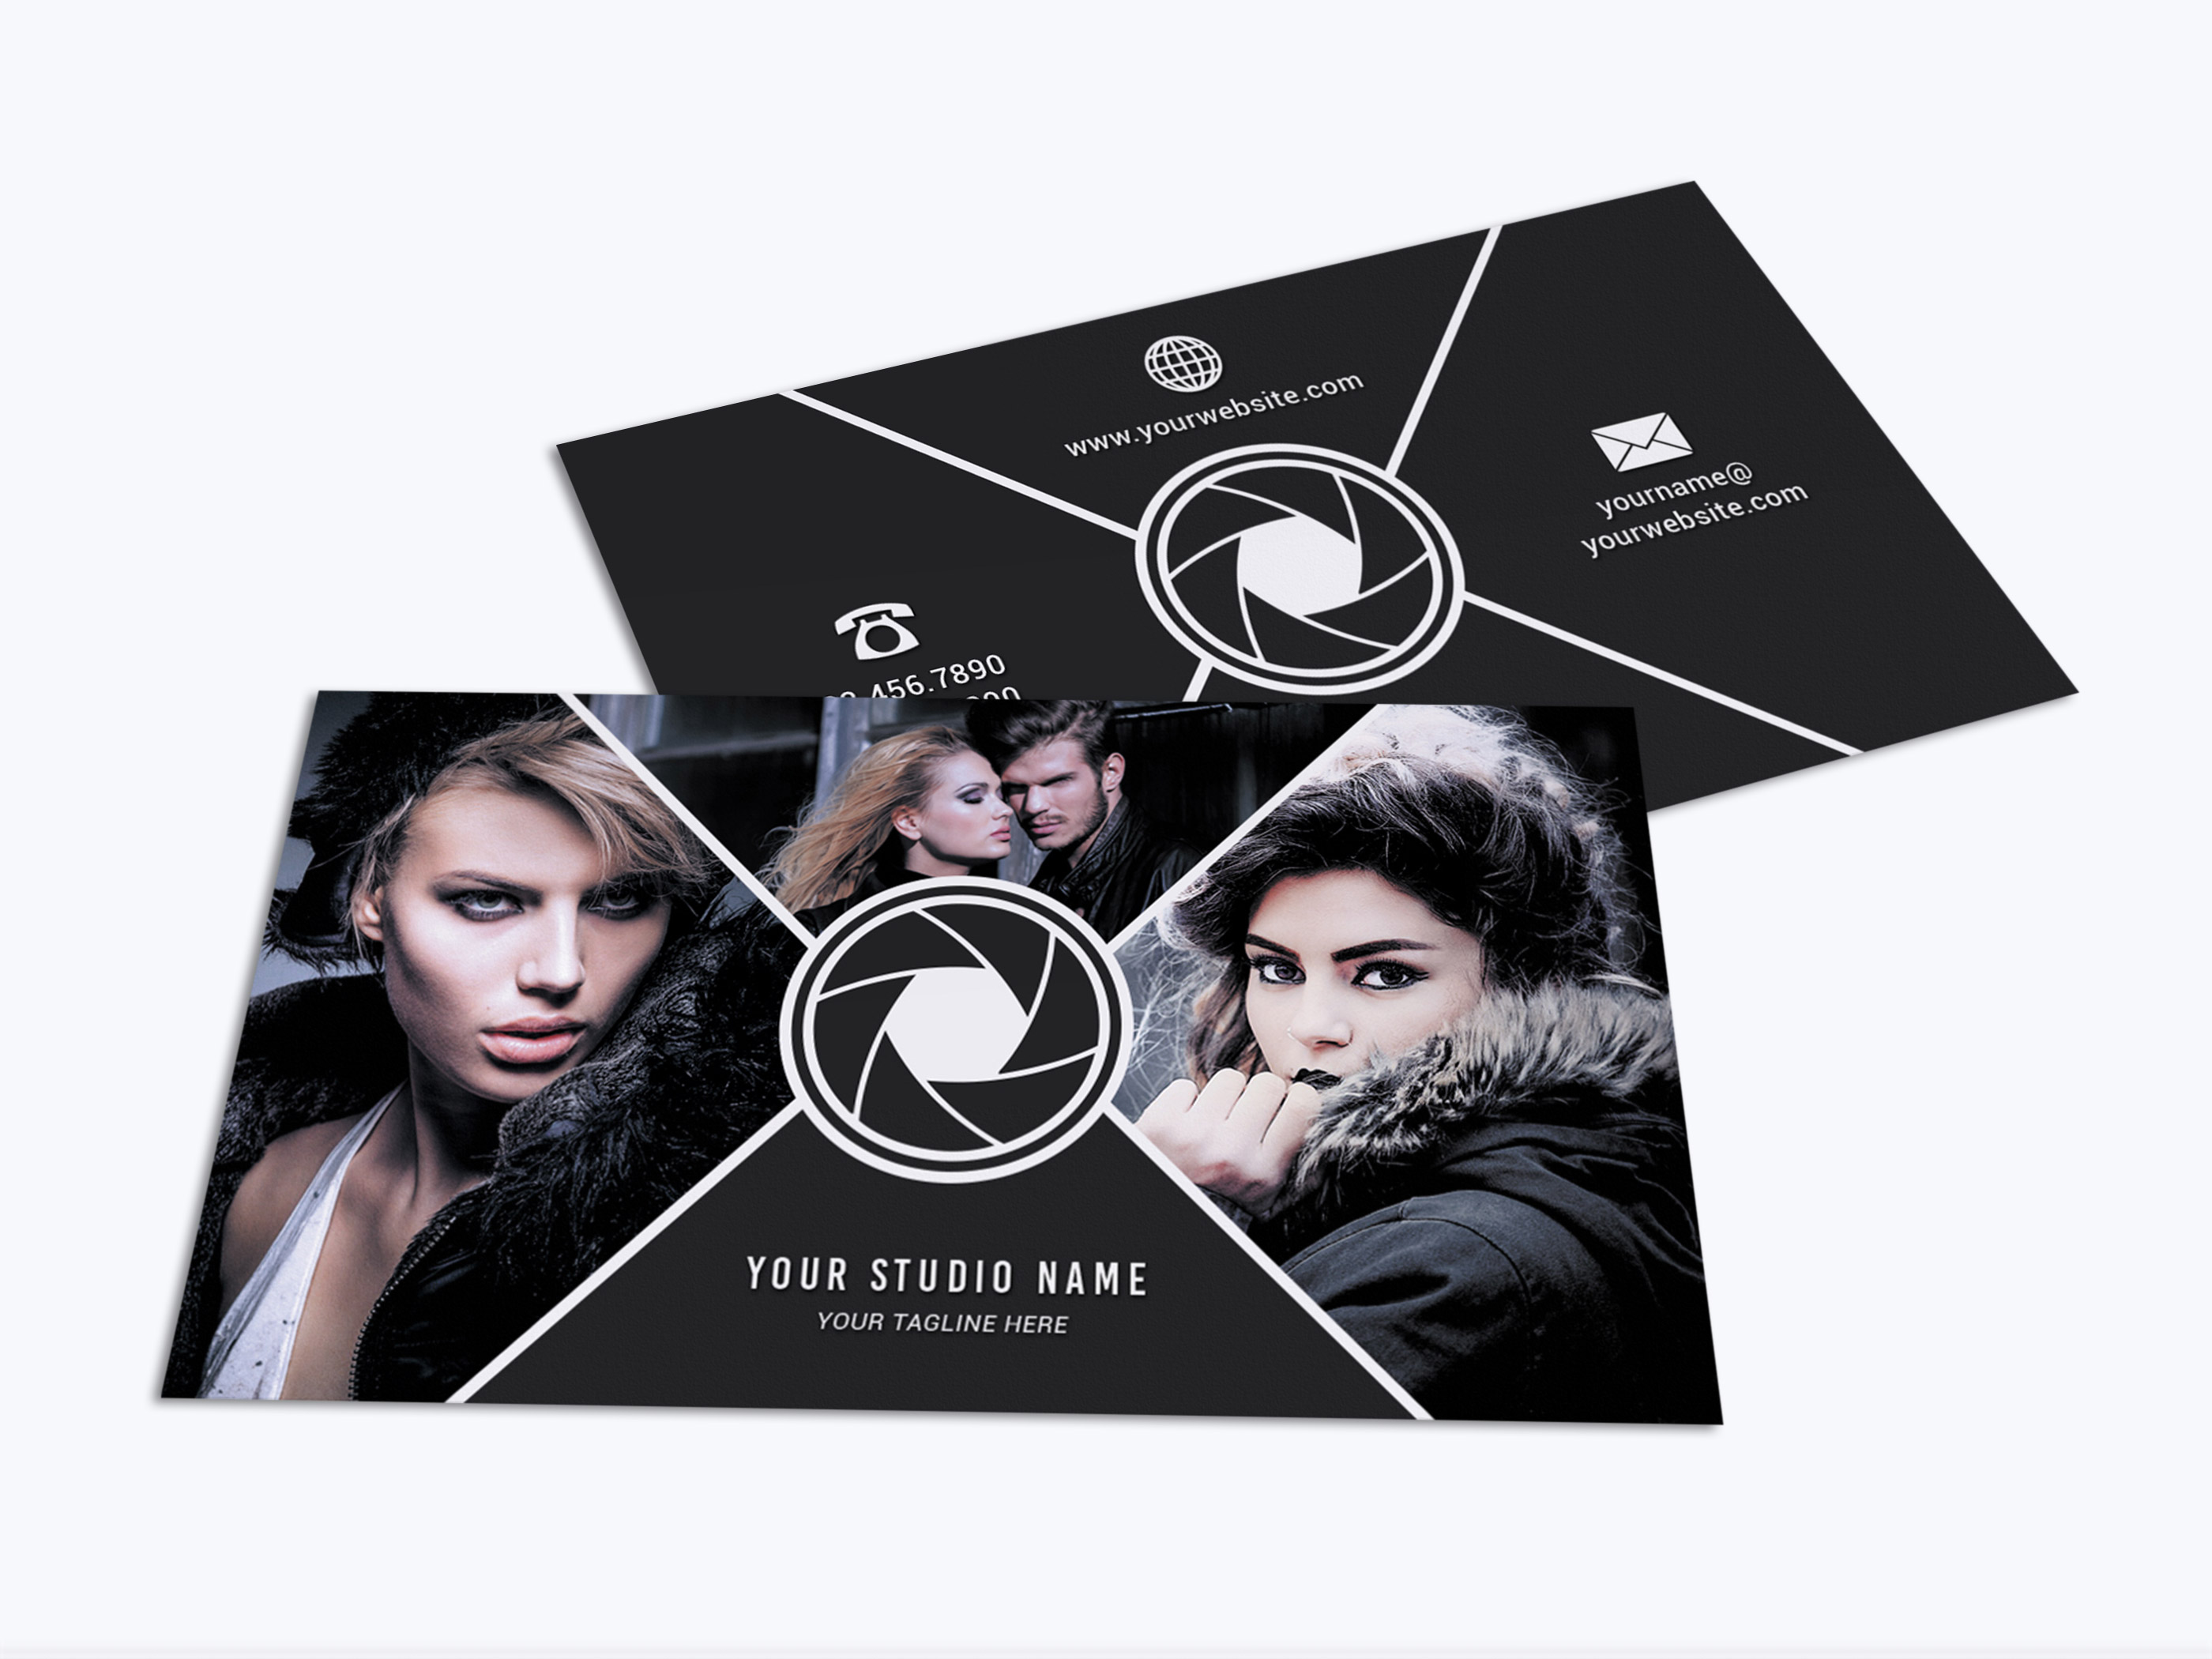 Business Card Template 017 Photoshop example image 2